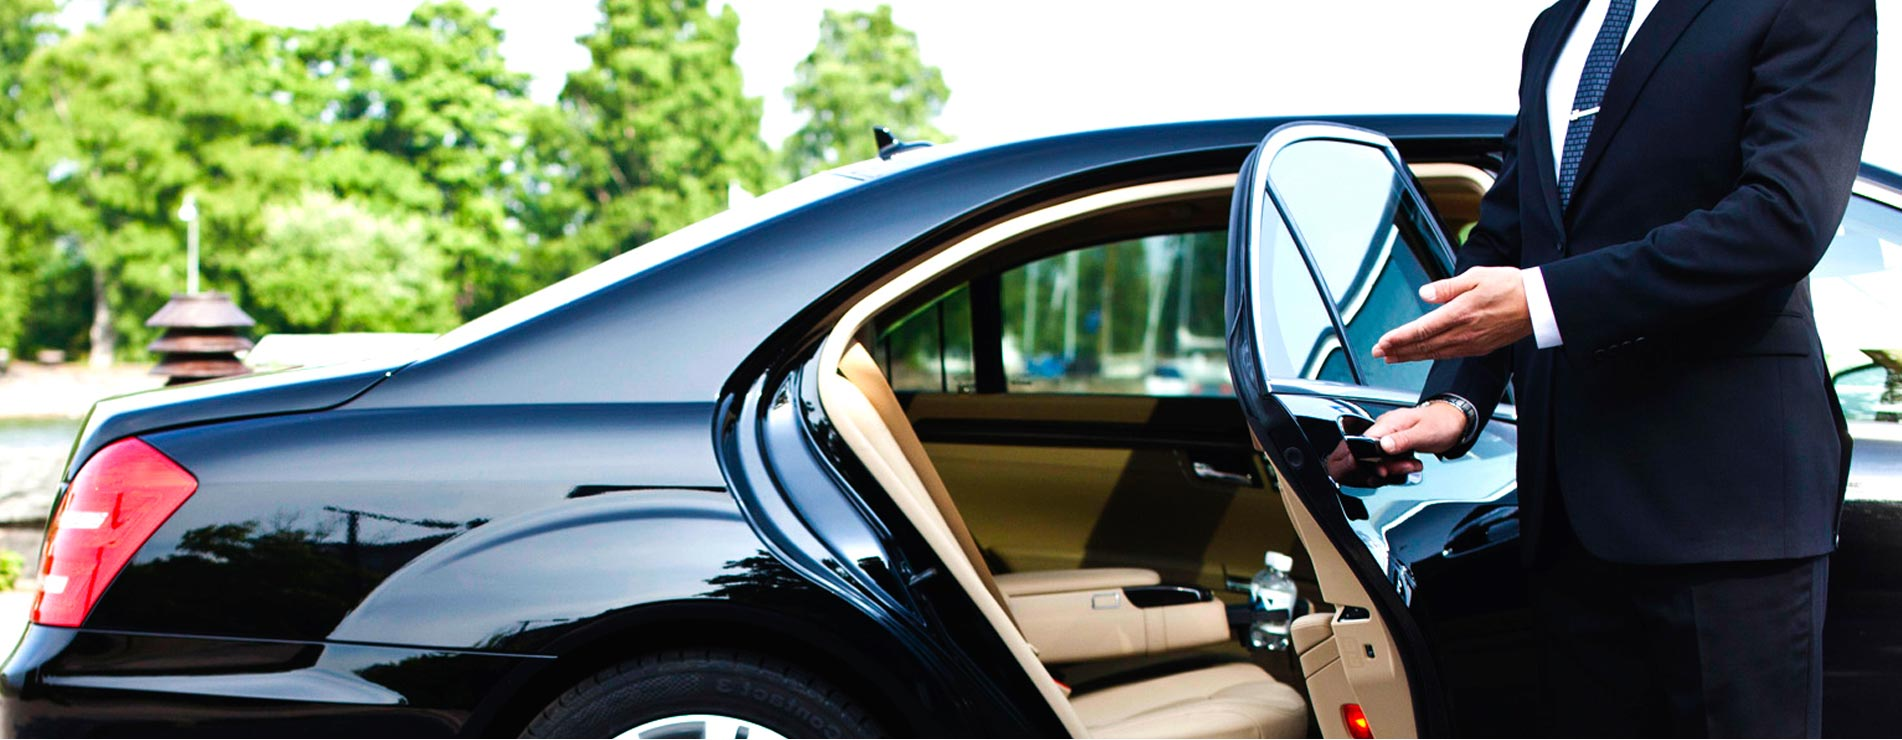 WHAT EXACTLY DO YOU GET WITH A FULL-SERVICE LIMO?